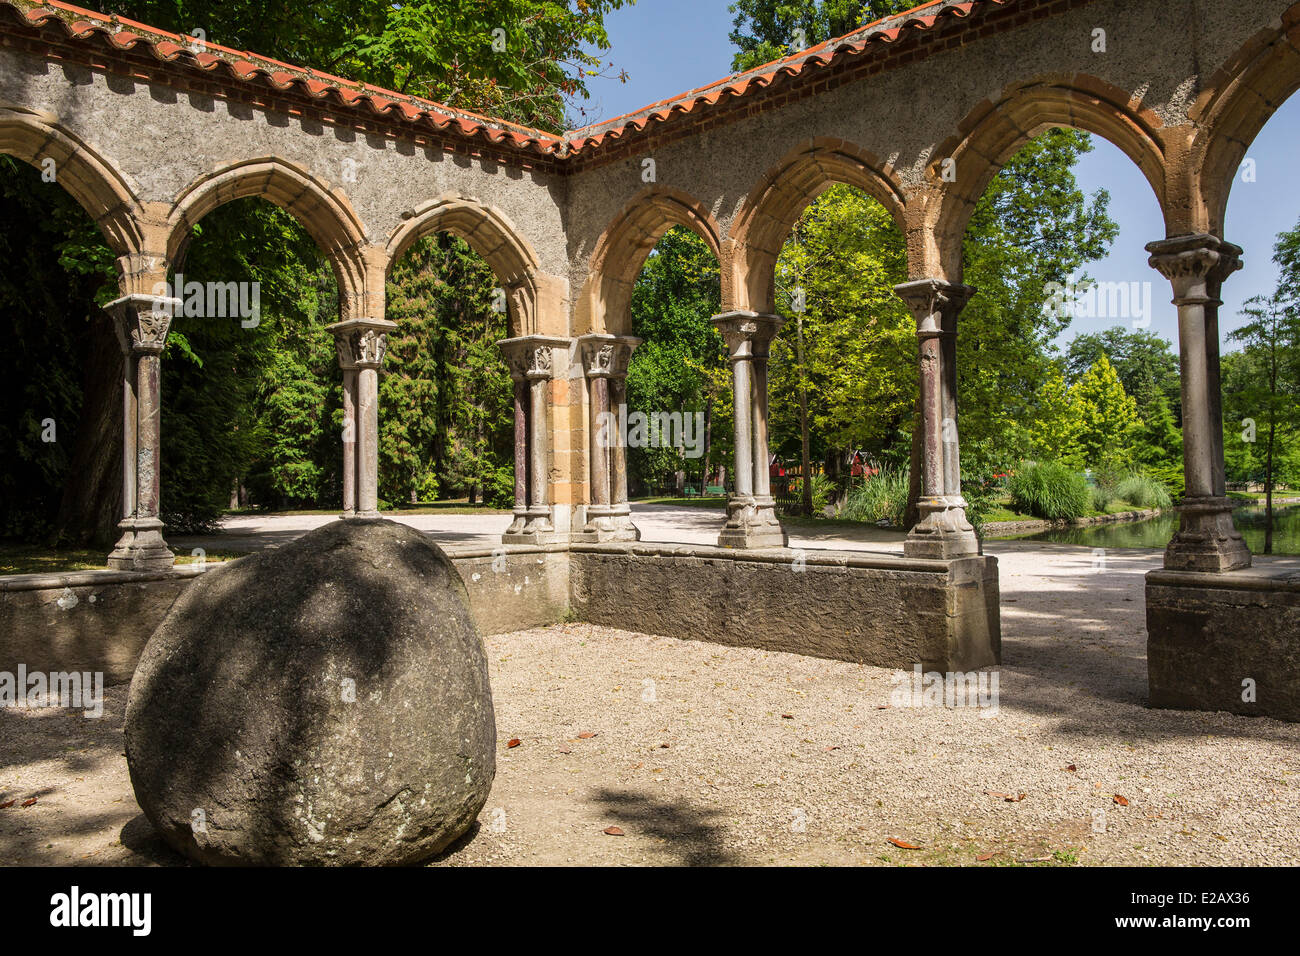 France, Hautes Pyrenees, Tarbes, cloître du Jardin Massey Photo Stock